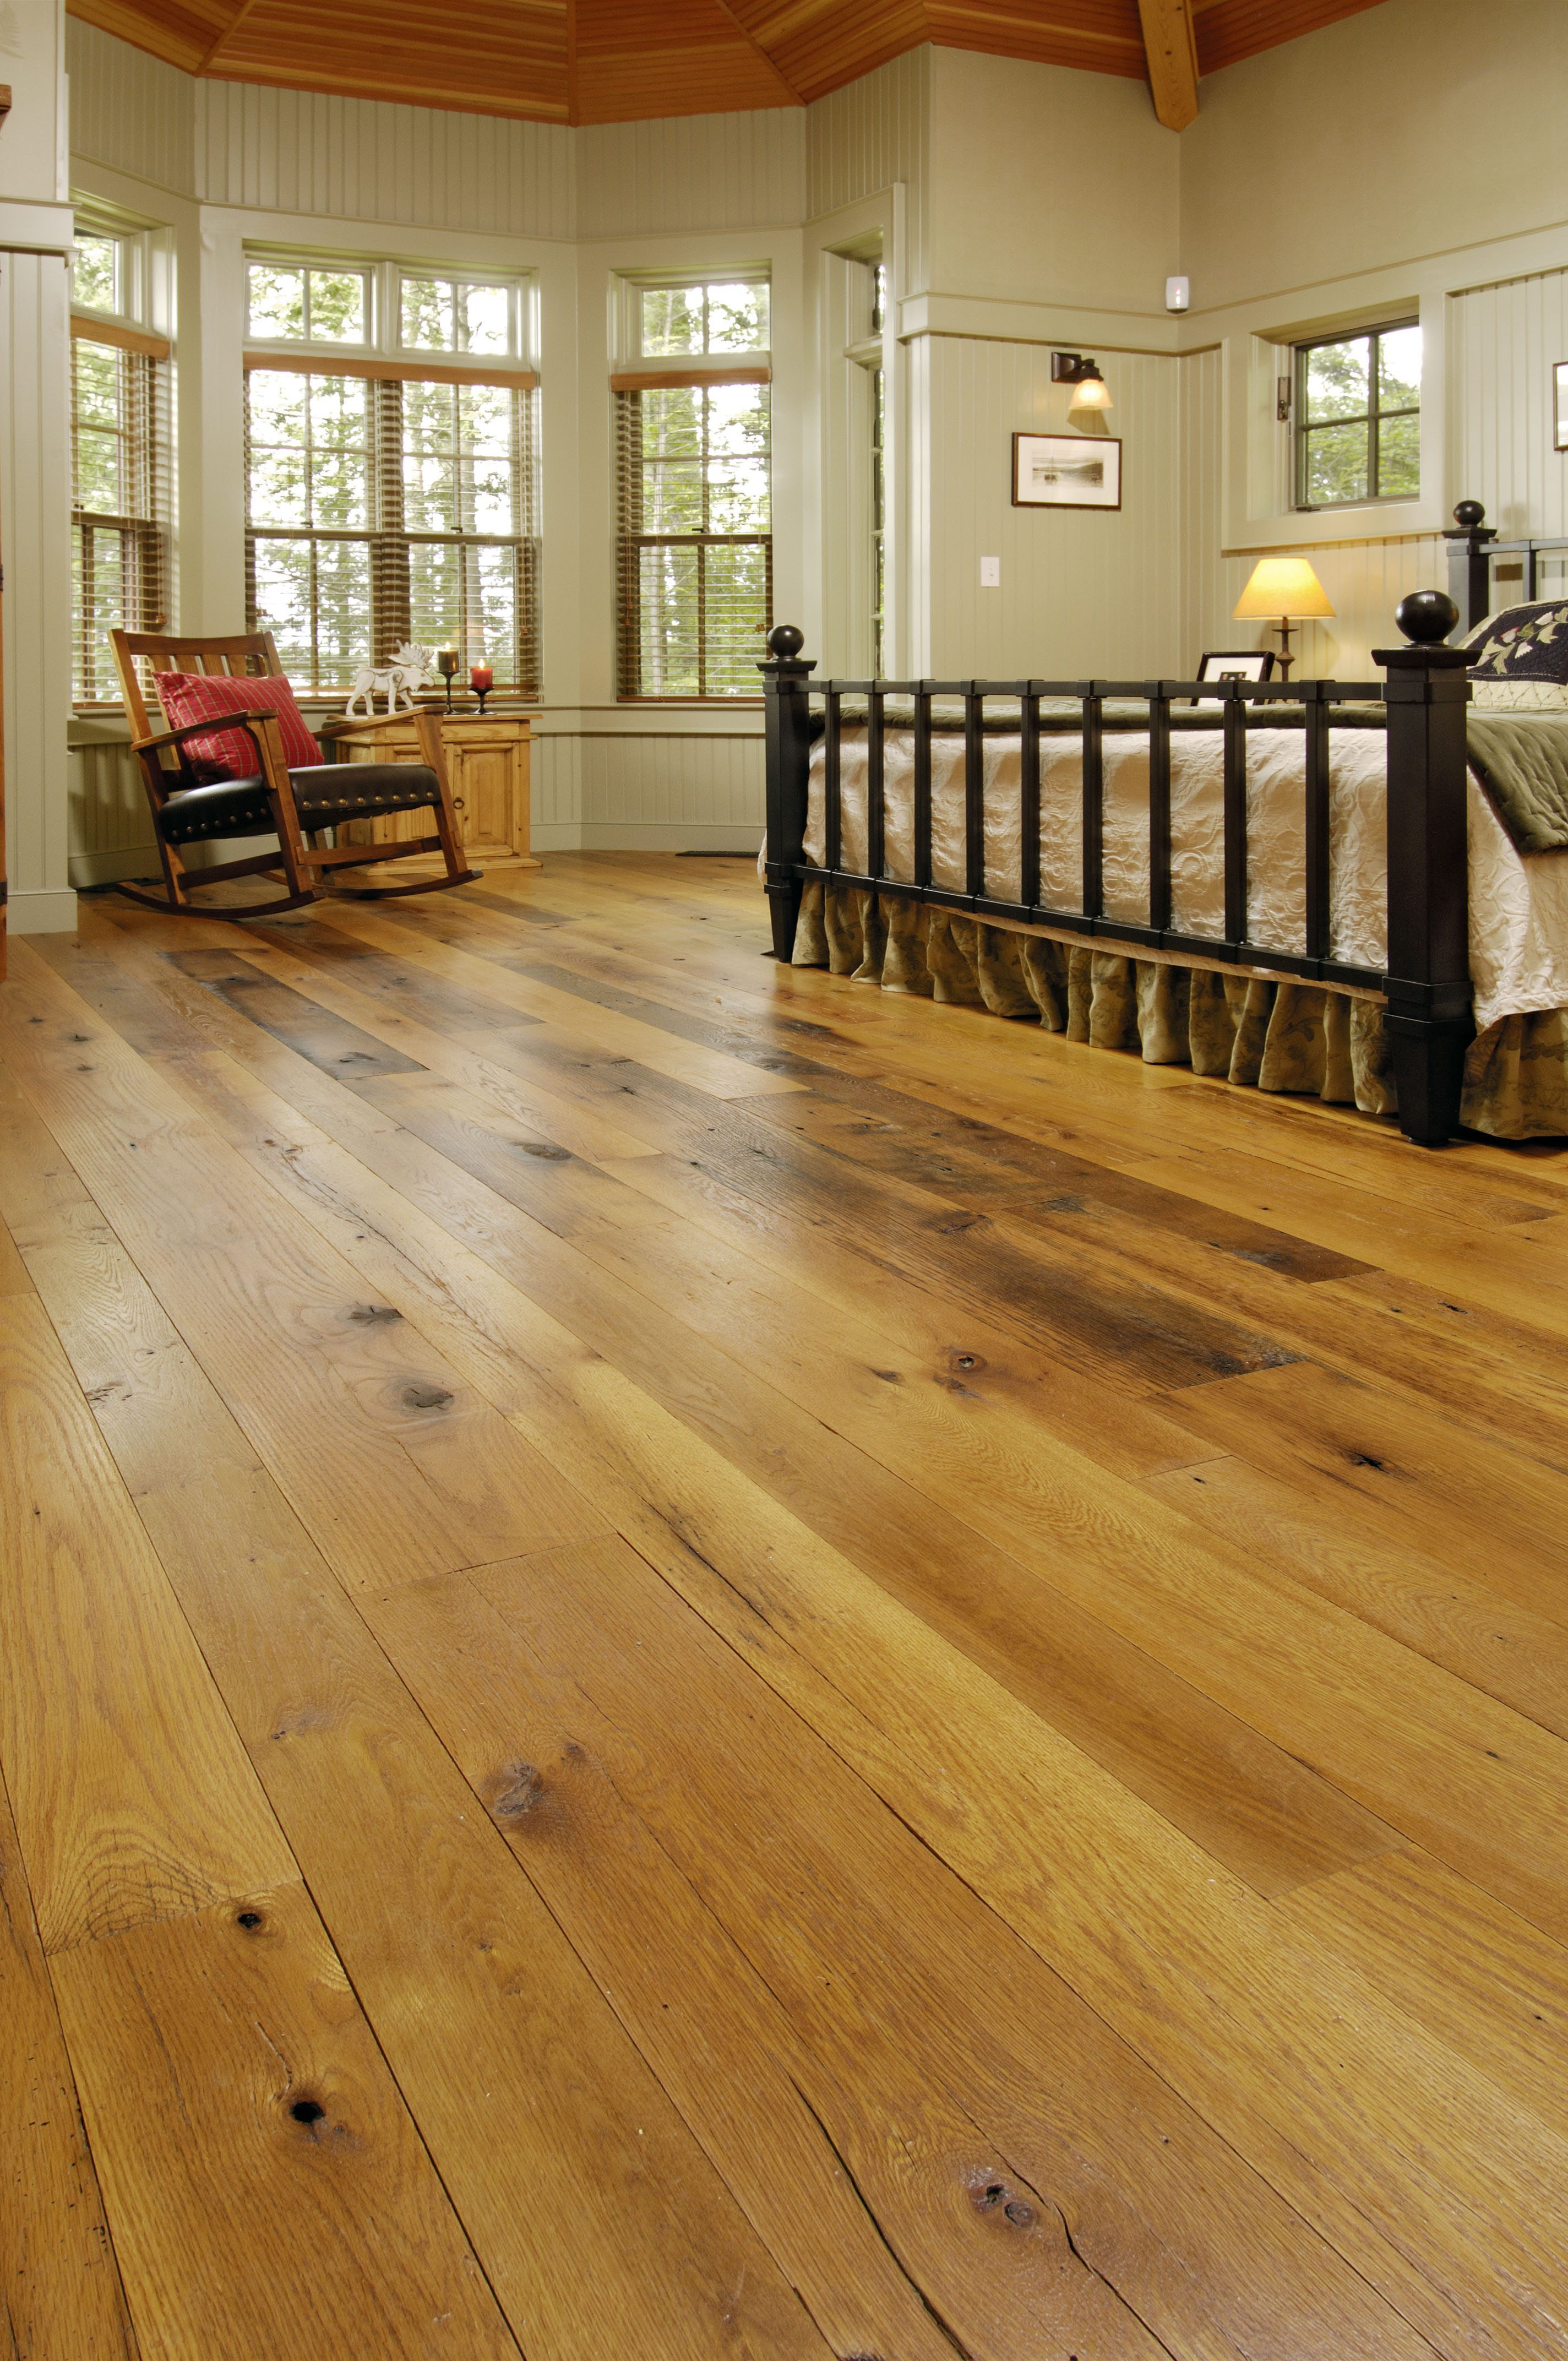 Carlisle Reclaimed Oak Wood Flooring.